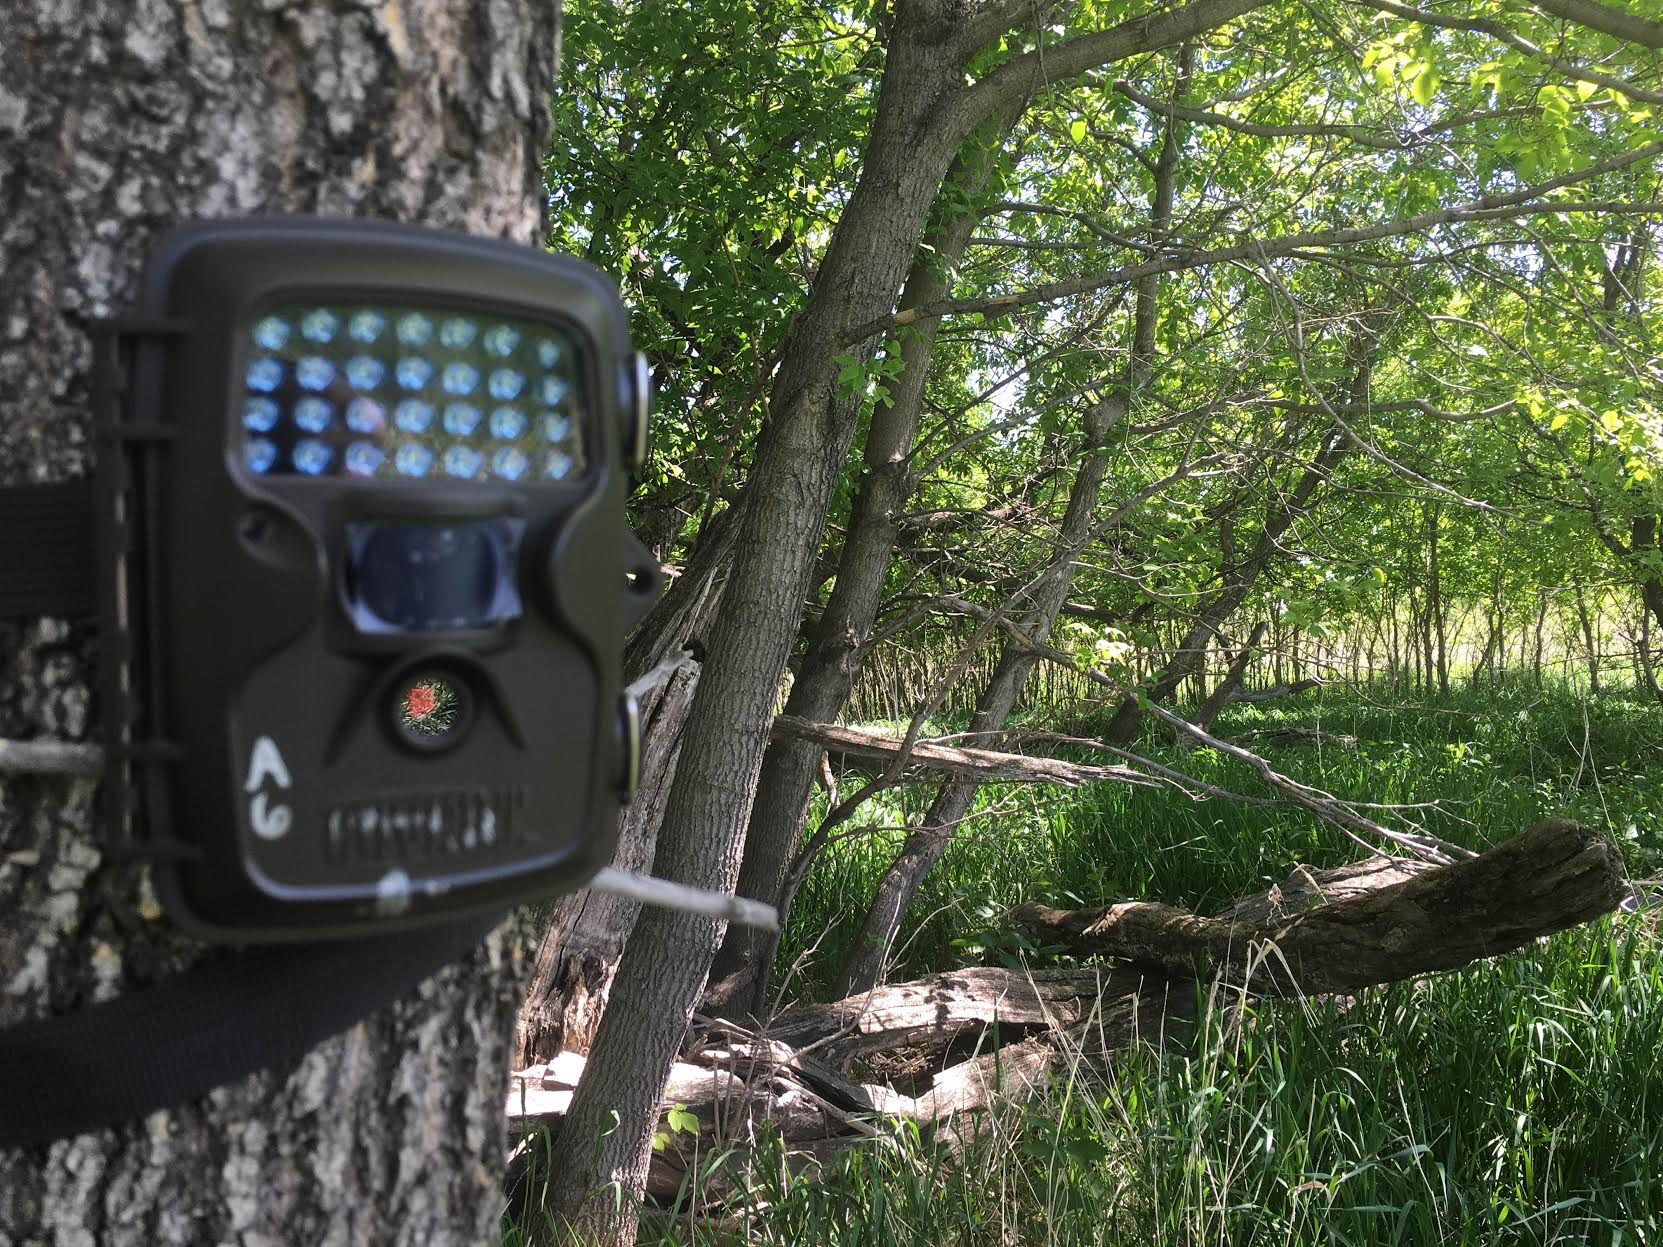 Want to learn more about how I use trail cameras? You can read more about my trail camera strategies in  The Perfect Trail Cam Setup and  Trail Cameras, Help or Hindrance?